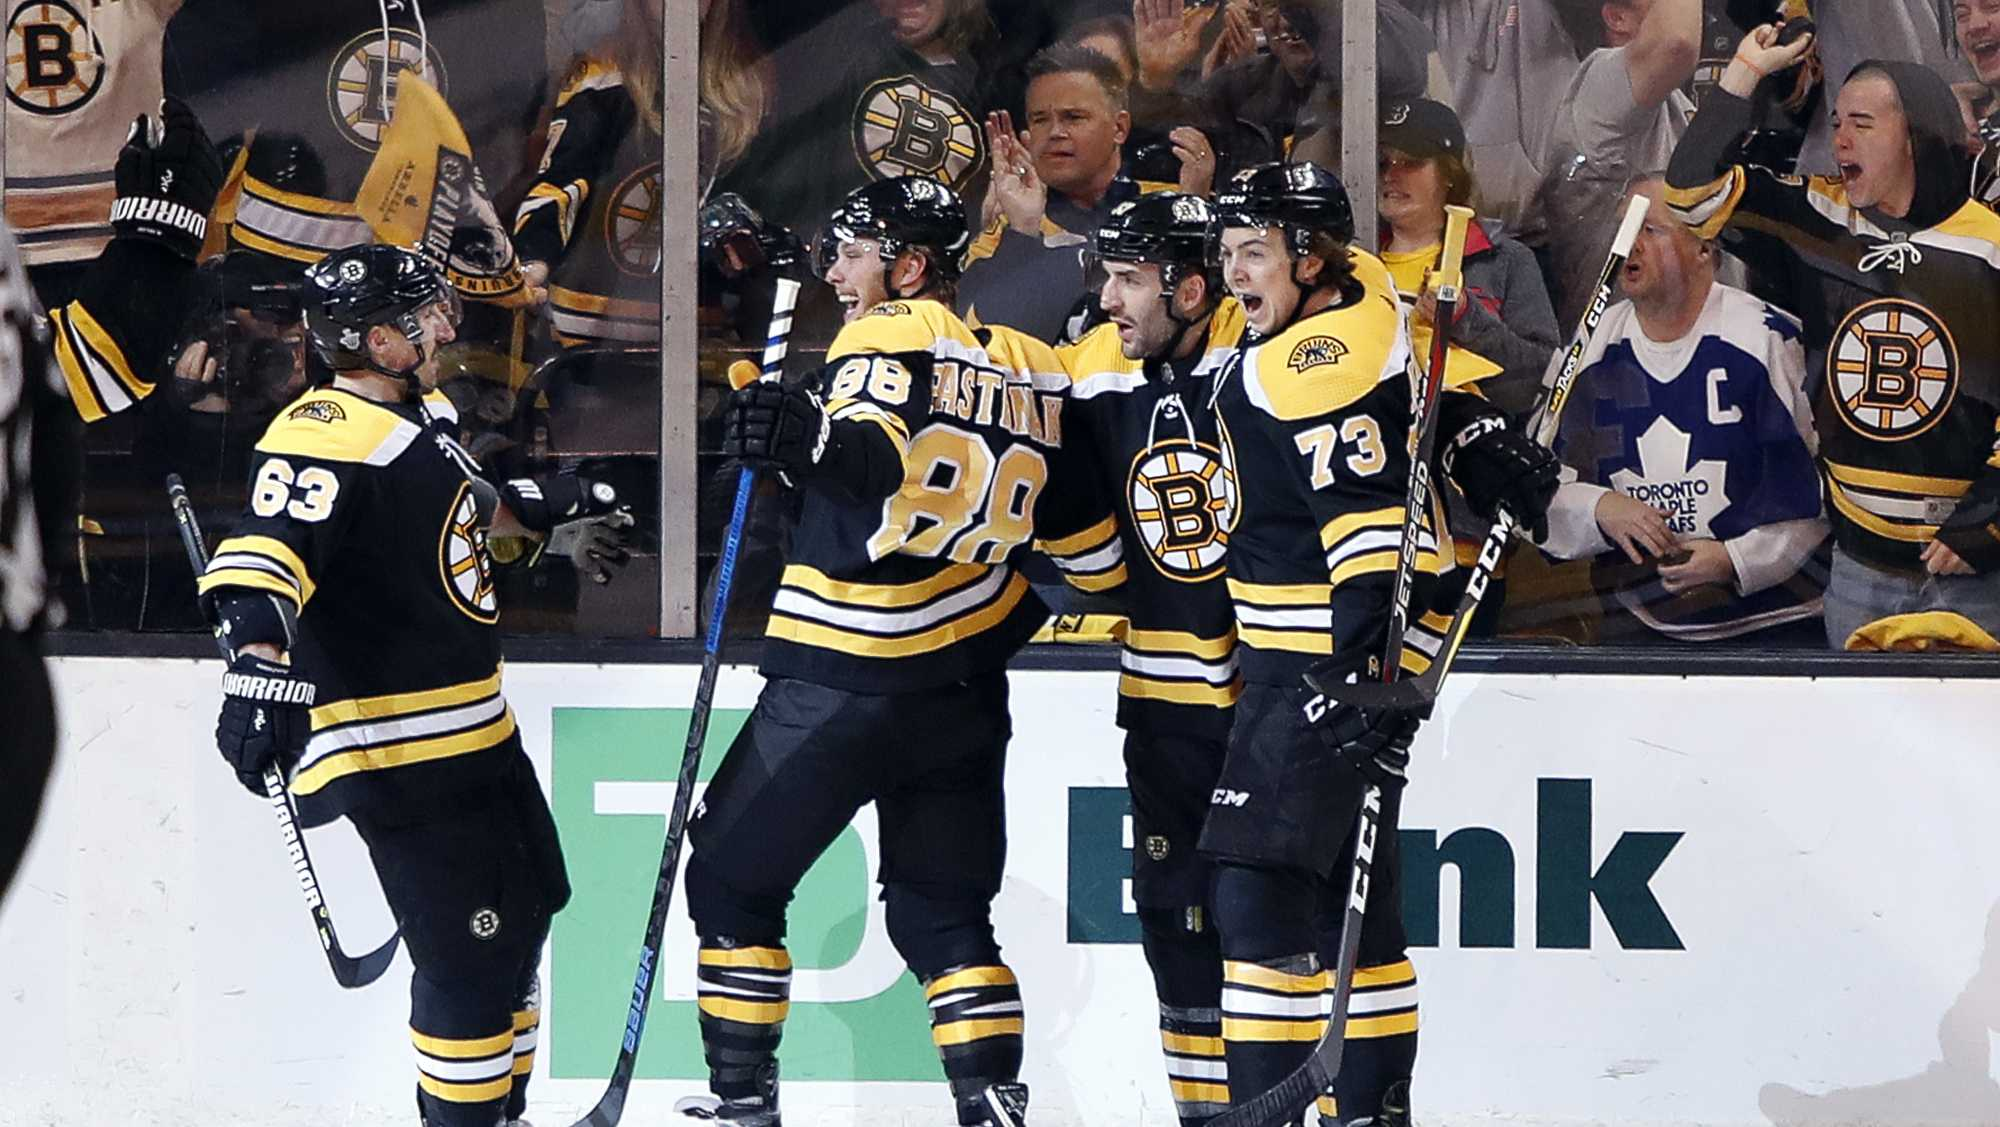 Boston Bruins' Brad Marchand, David Pastrnak, Patrice Bergeron and Charlie McAvoy, from left, celebrate after Pastrnak scored against the Toronto Maple Leafs during the first period of Game 2 of an NHL hockey first-round playoff series in Boston Saturday, April 14, 2018.